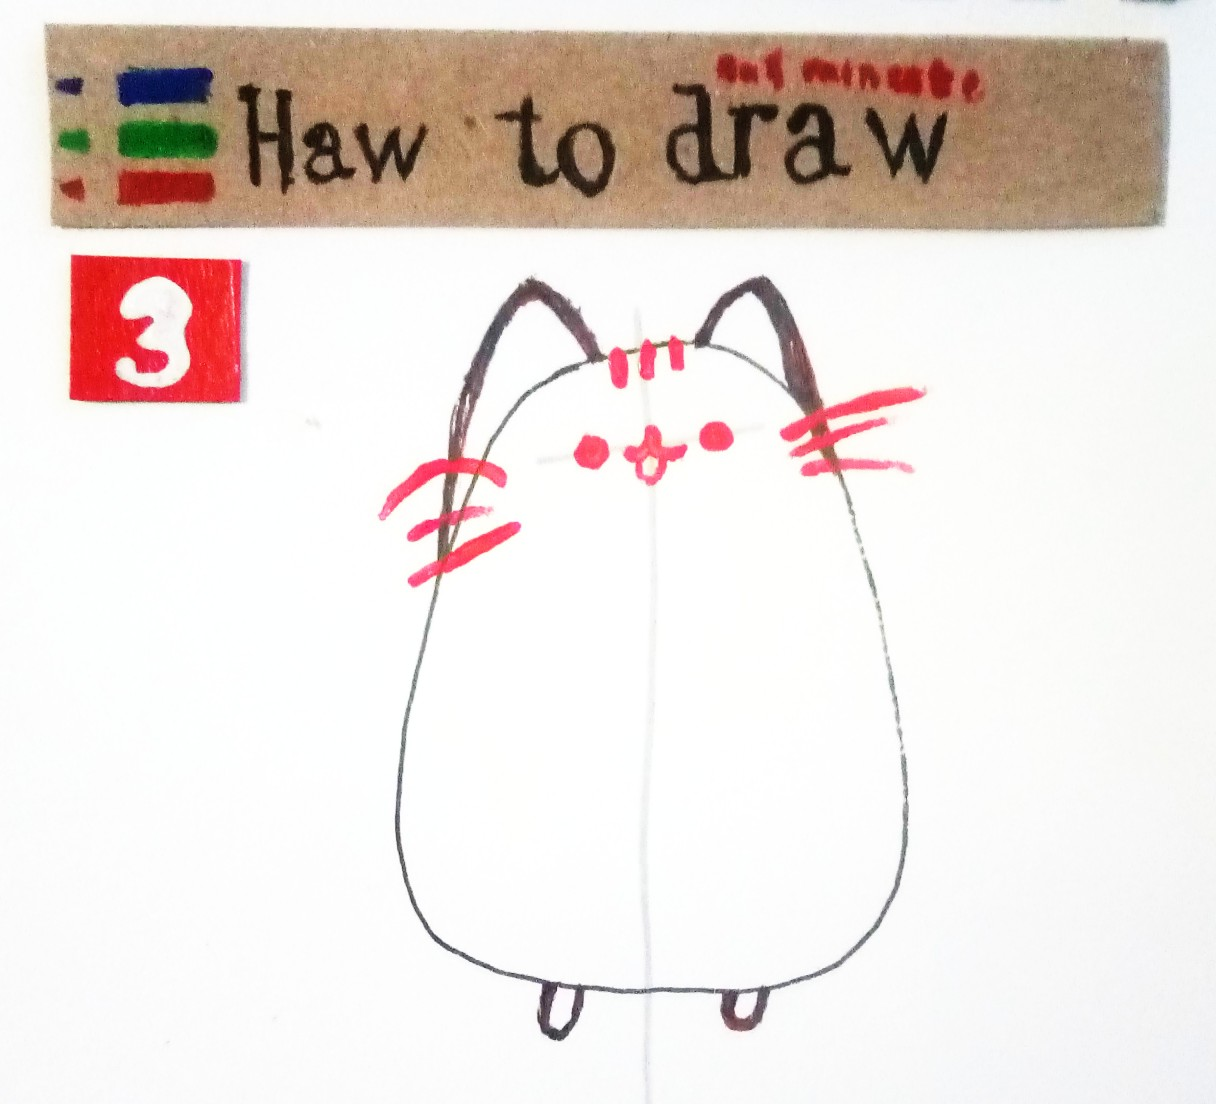 How to draw a Pusheen Cat